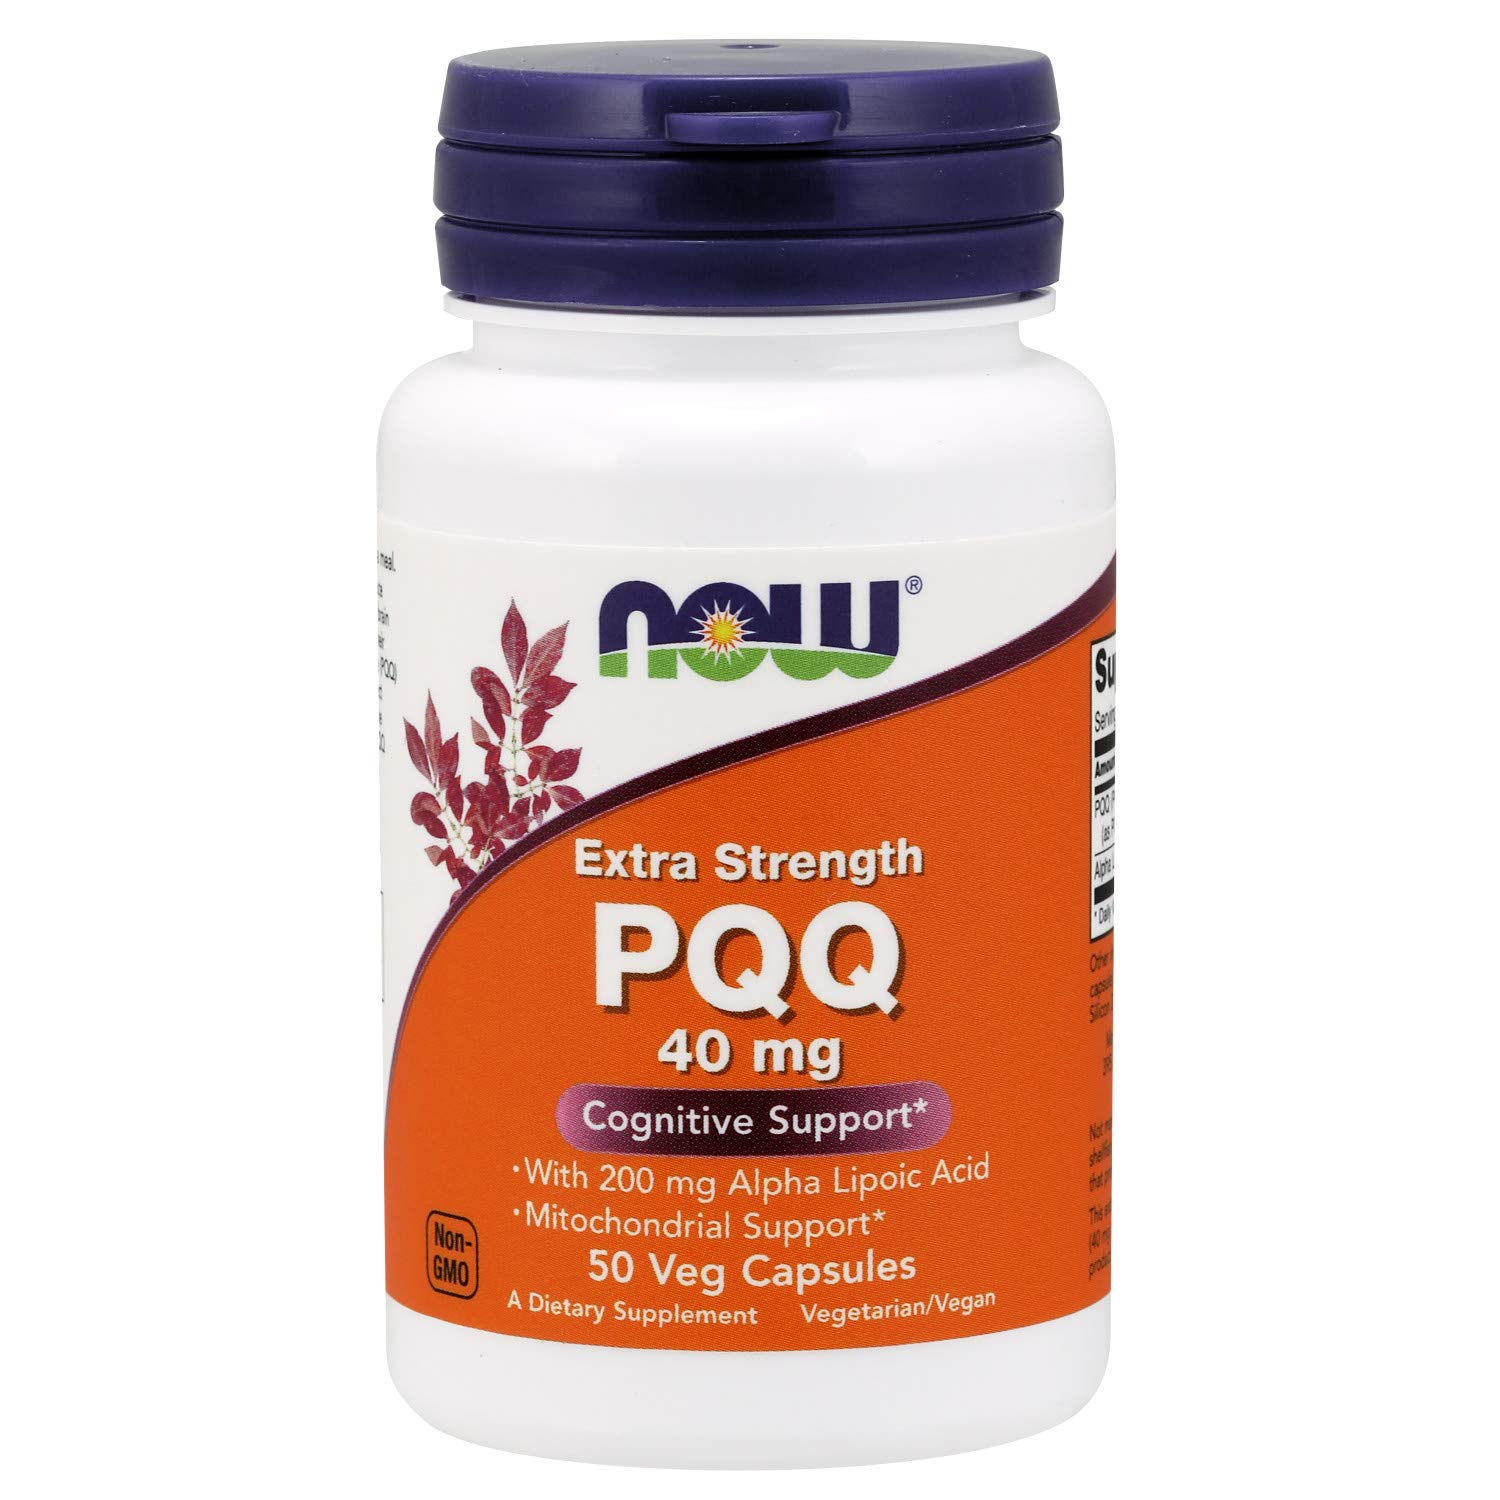 Now Supplements, PQQ 40 mg with 200 mg Alpha Lipoic Acid, Extra Strength, 50 Veg Capsules by NOW Foods